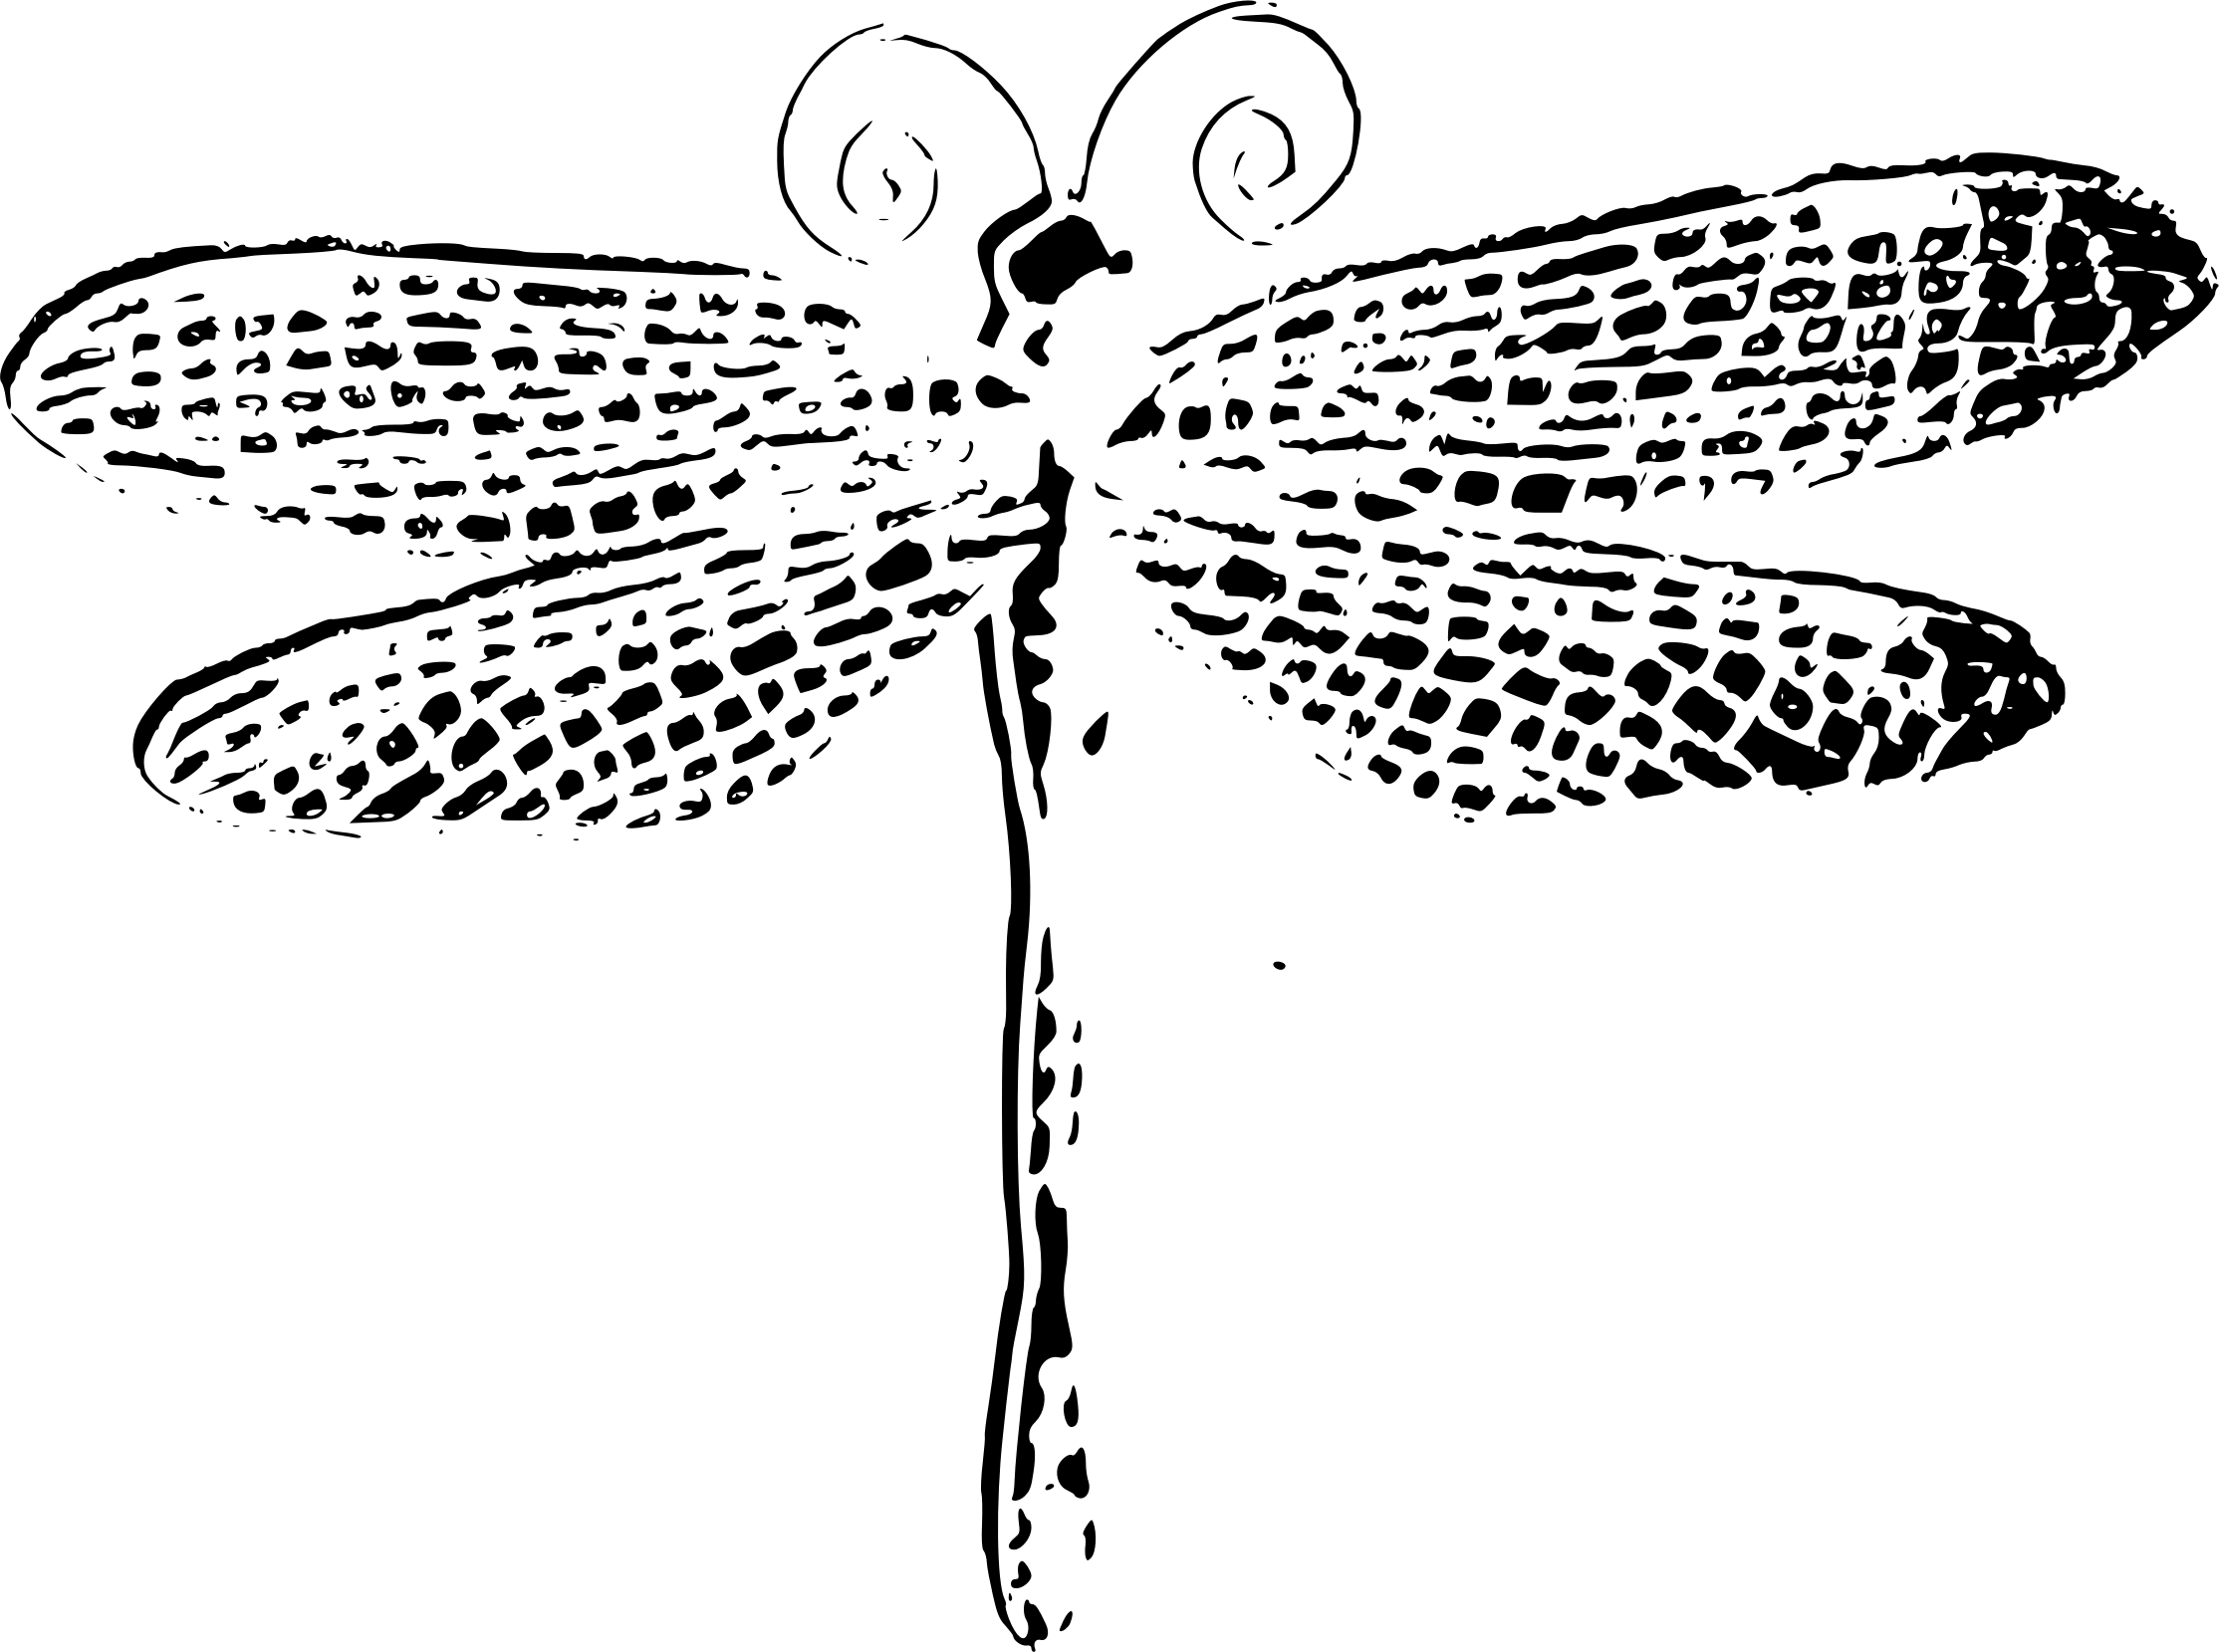 Free Dragonfly Outline Cliparts Download Free Clip Art